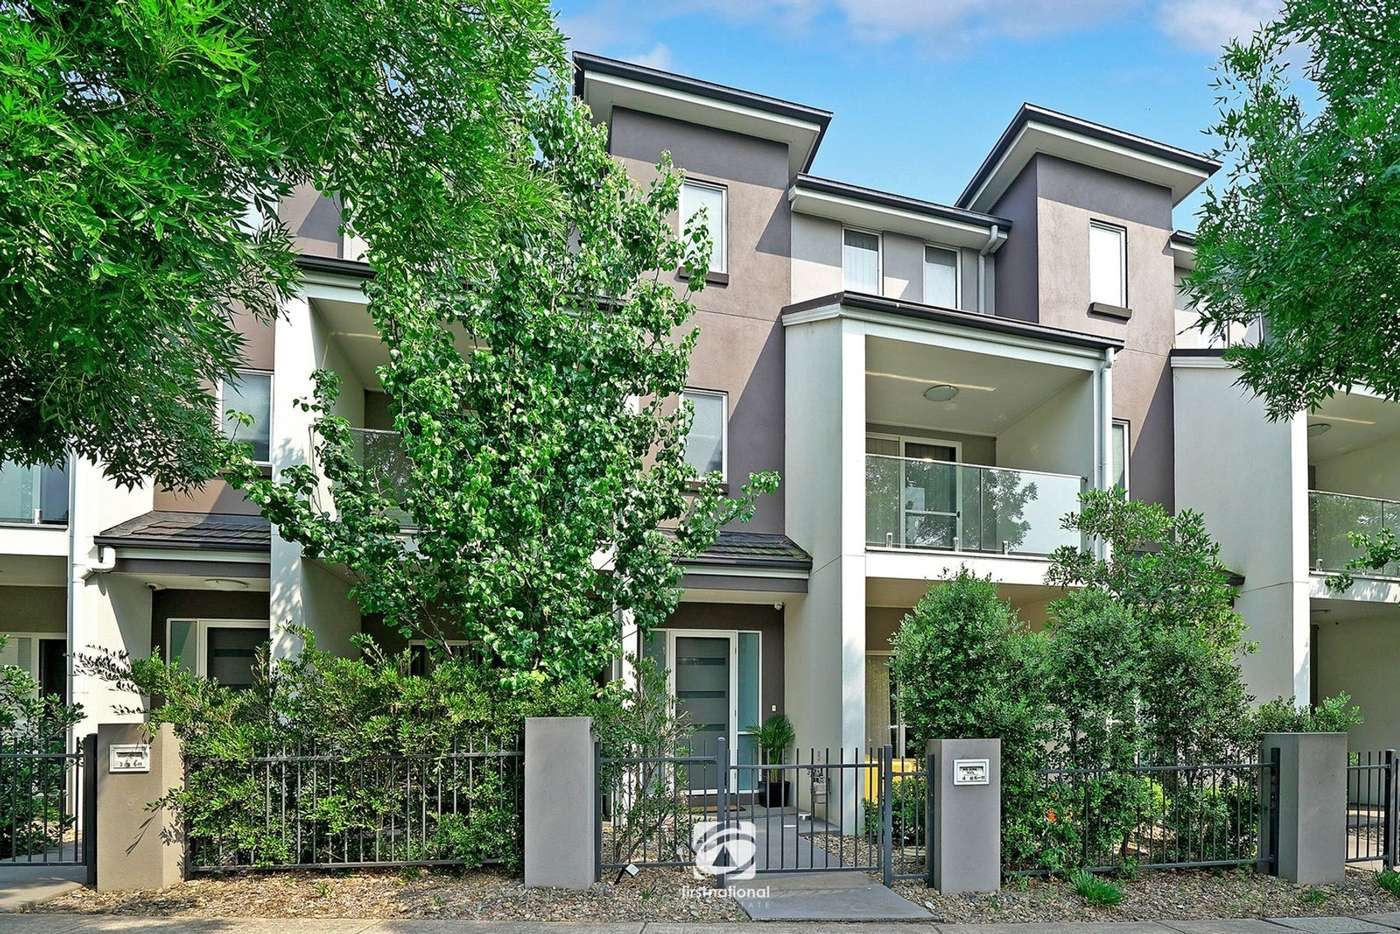 Main view of Homely townhouse listing, 4/6-11 Parkside Crescent, Campbelltown NSW 2560